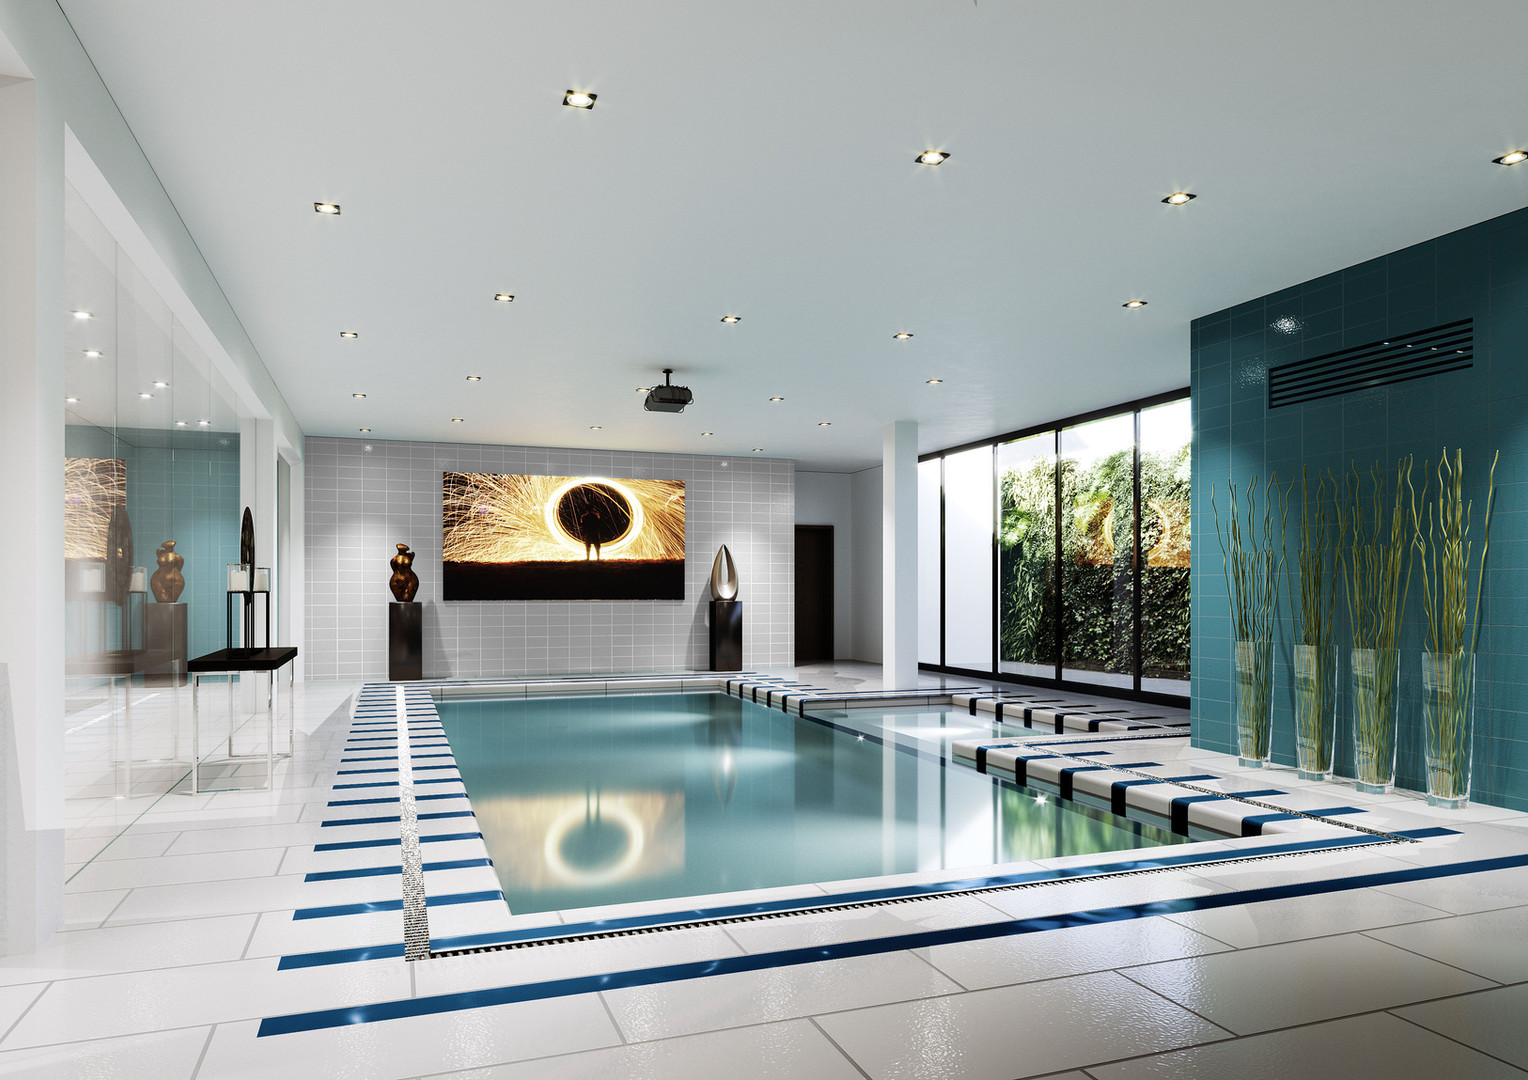 POOL WHITE and Bluel.jpg